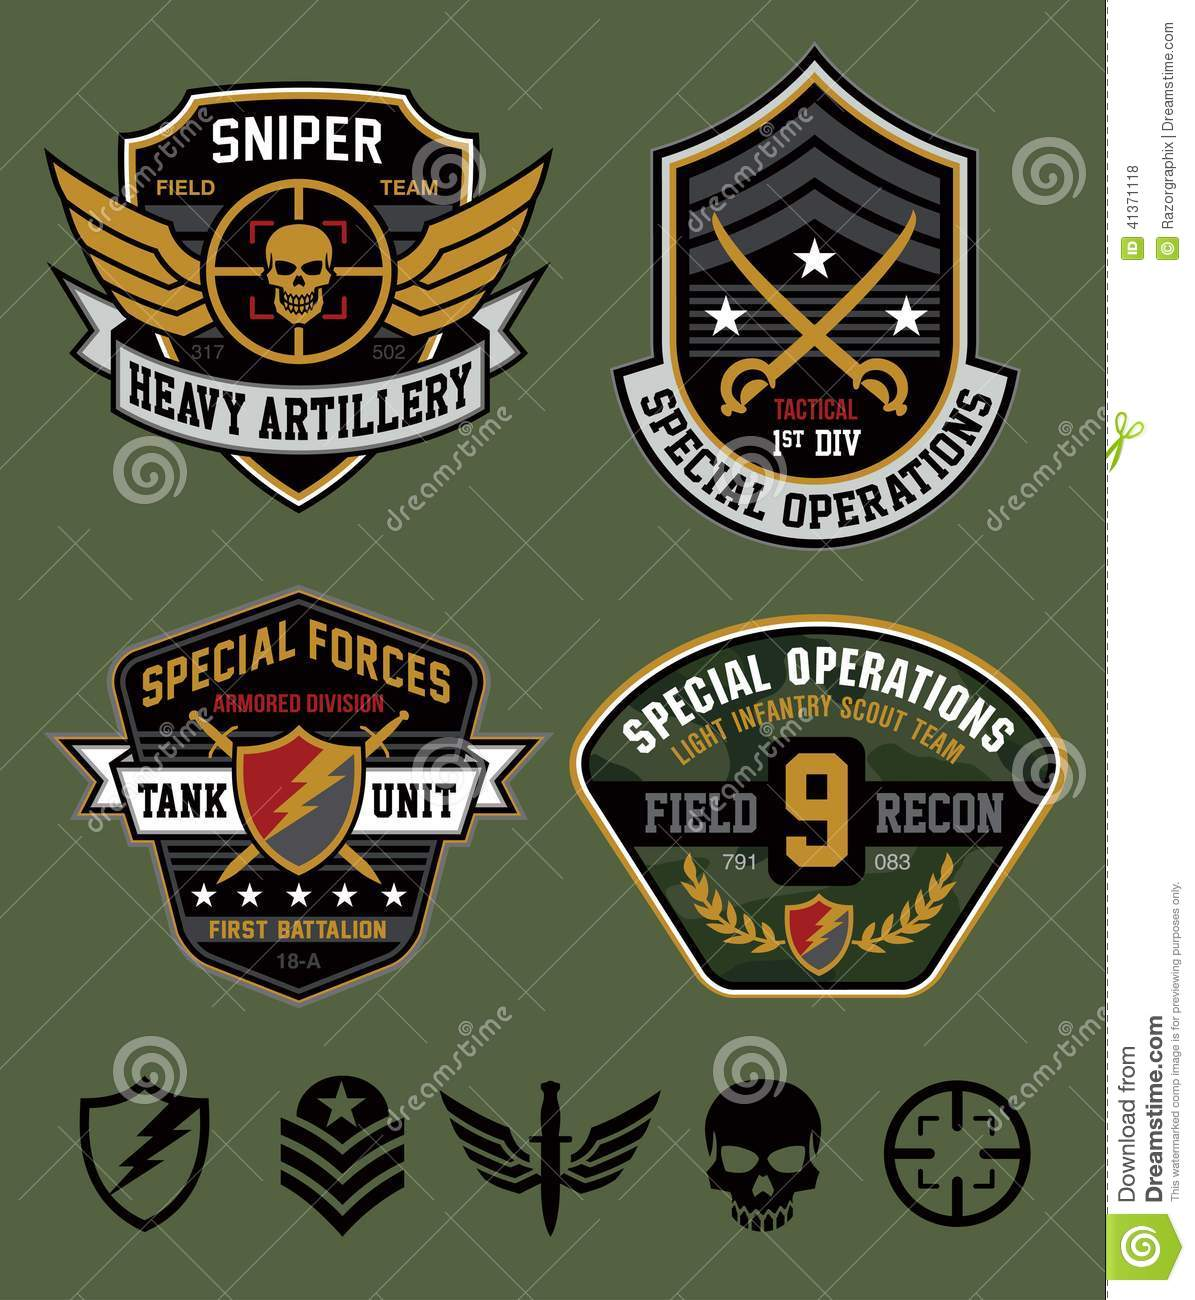 Patch cartoons illustrations vector stock images for Military patch template